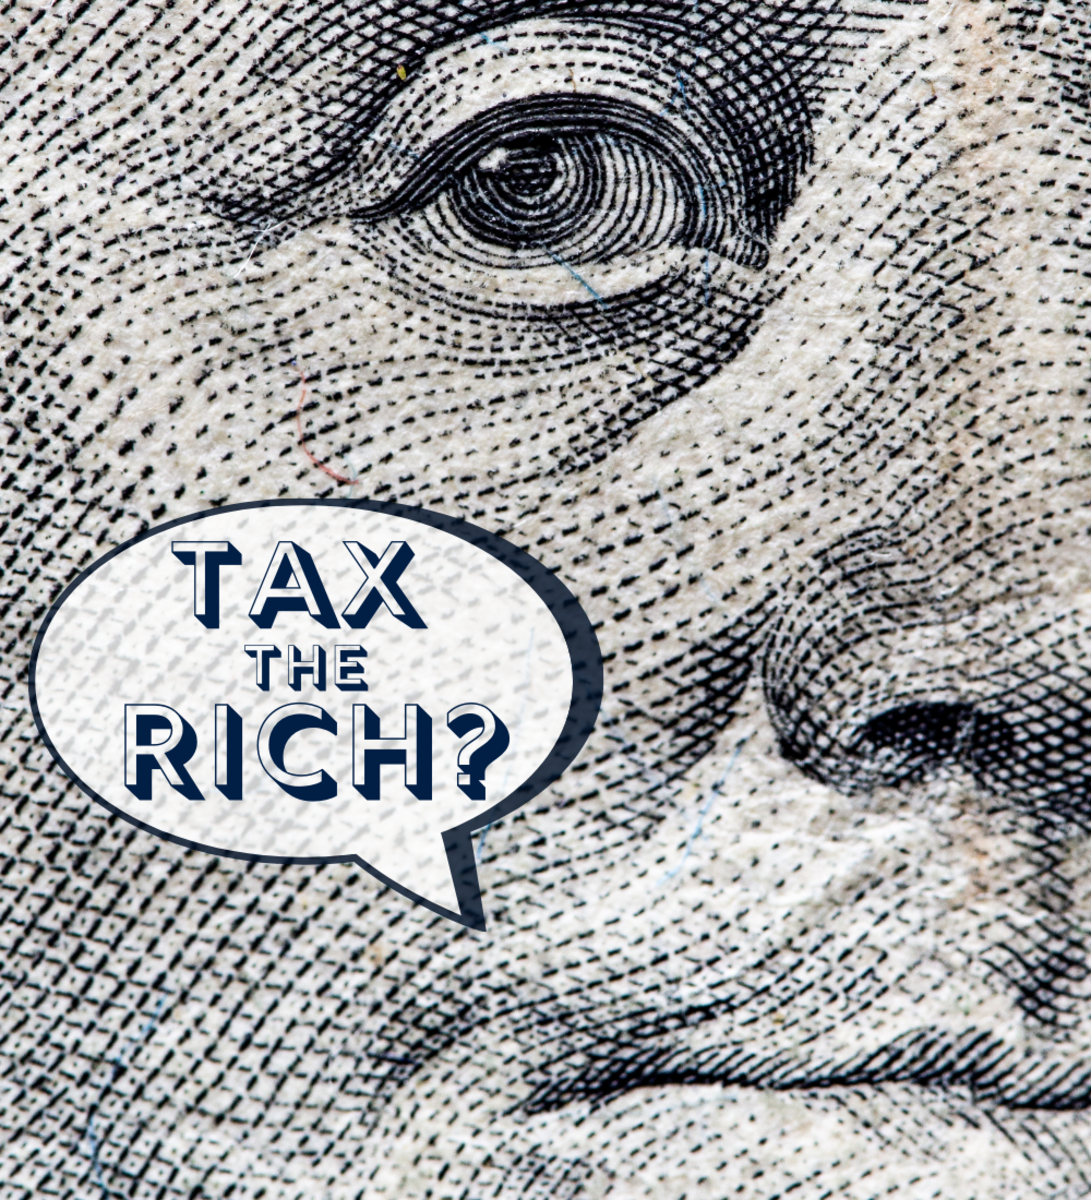 Tax the Rich? Pros and Cons